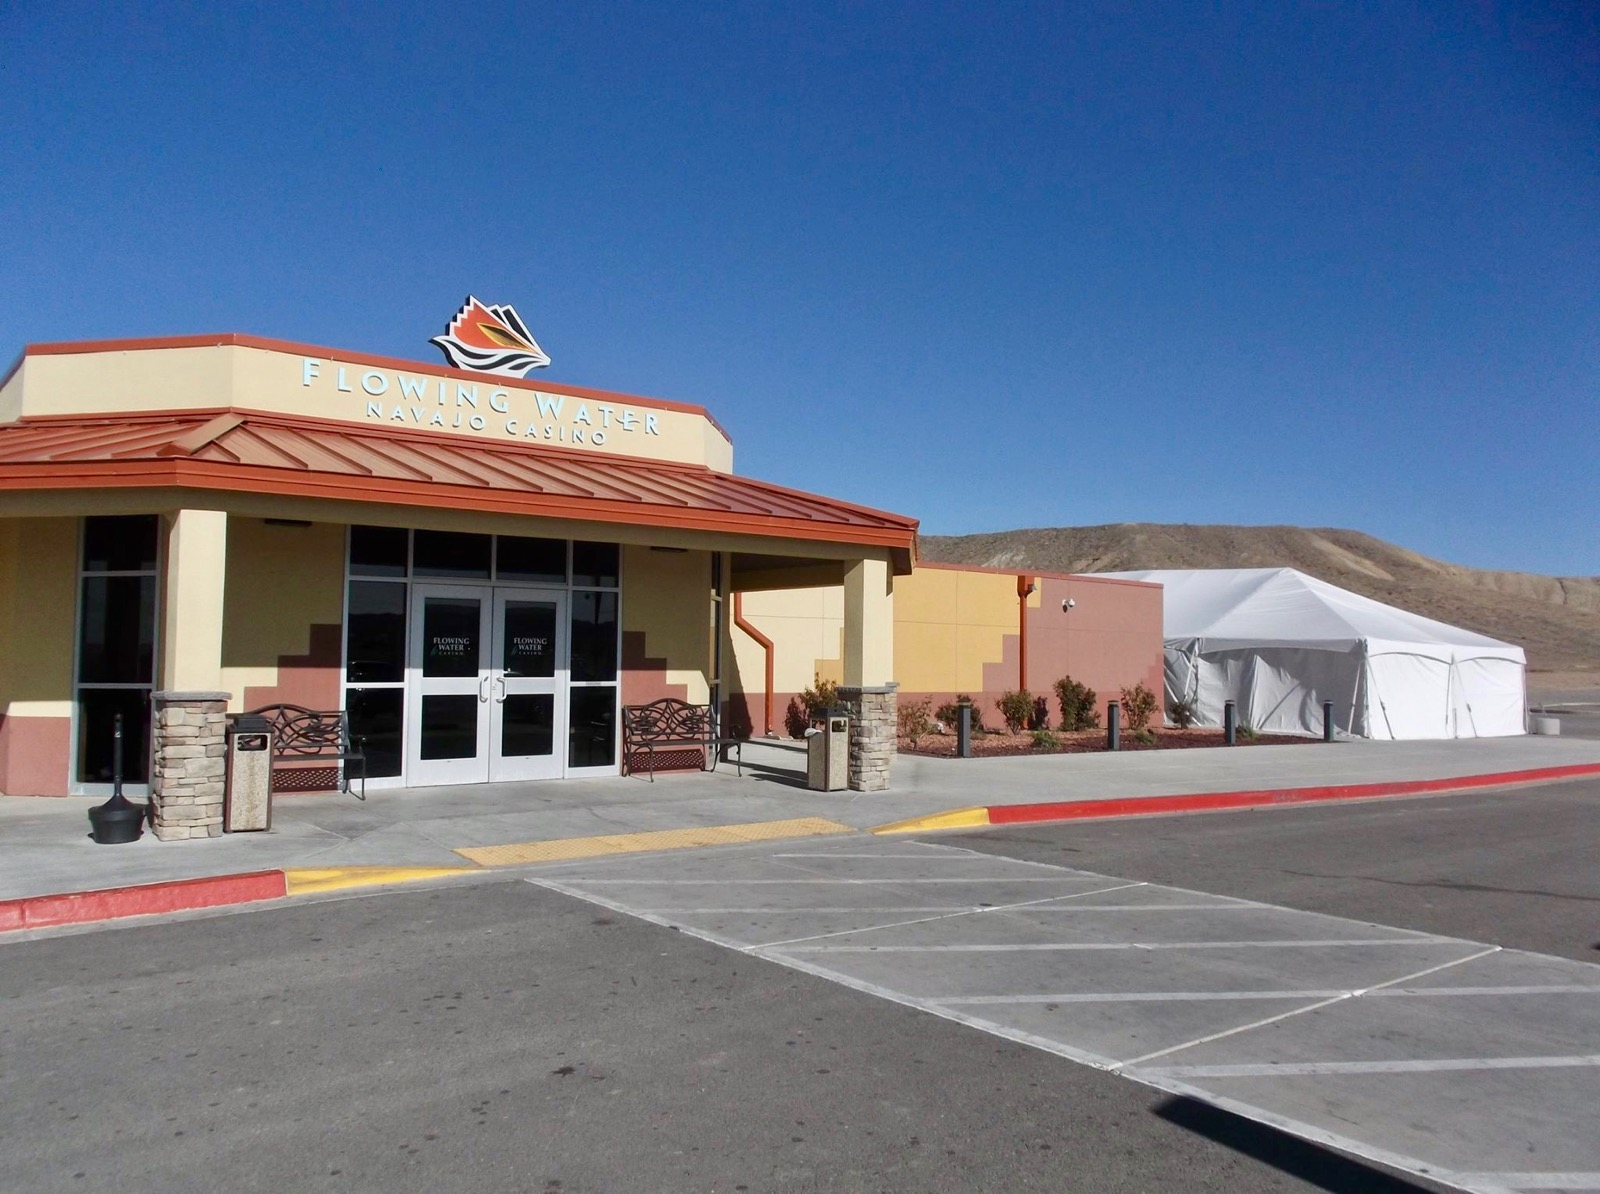 Navajo Nation casinos generate another $10 million for chapter communities